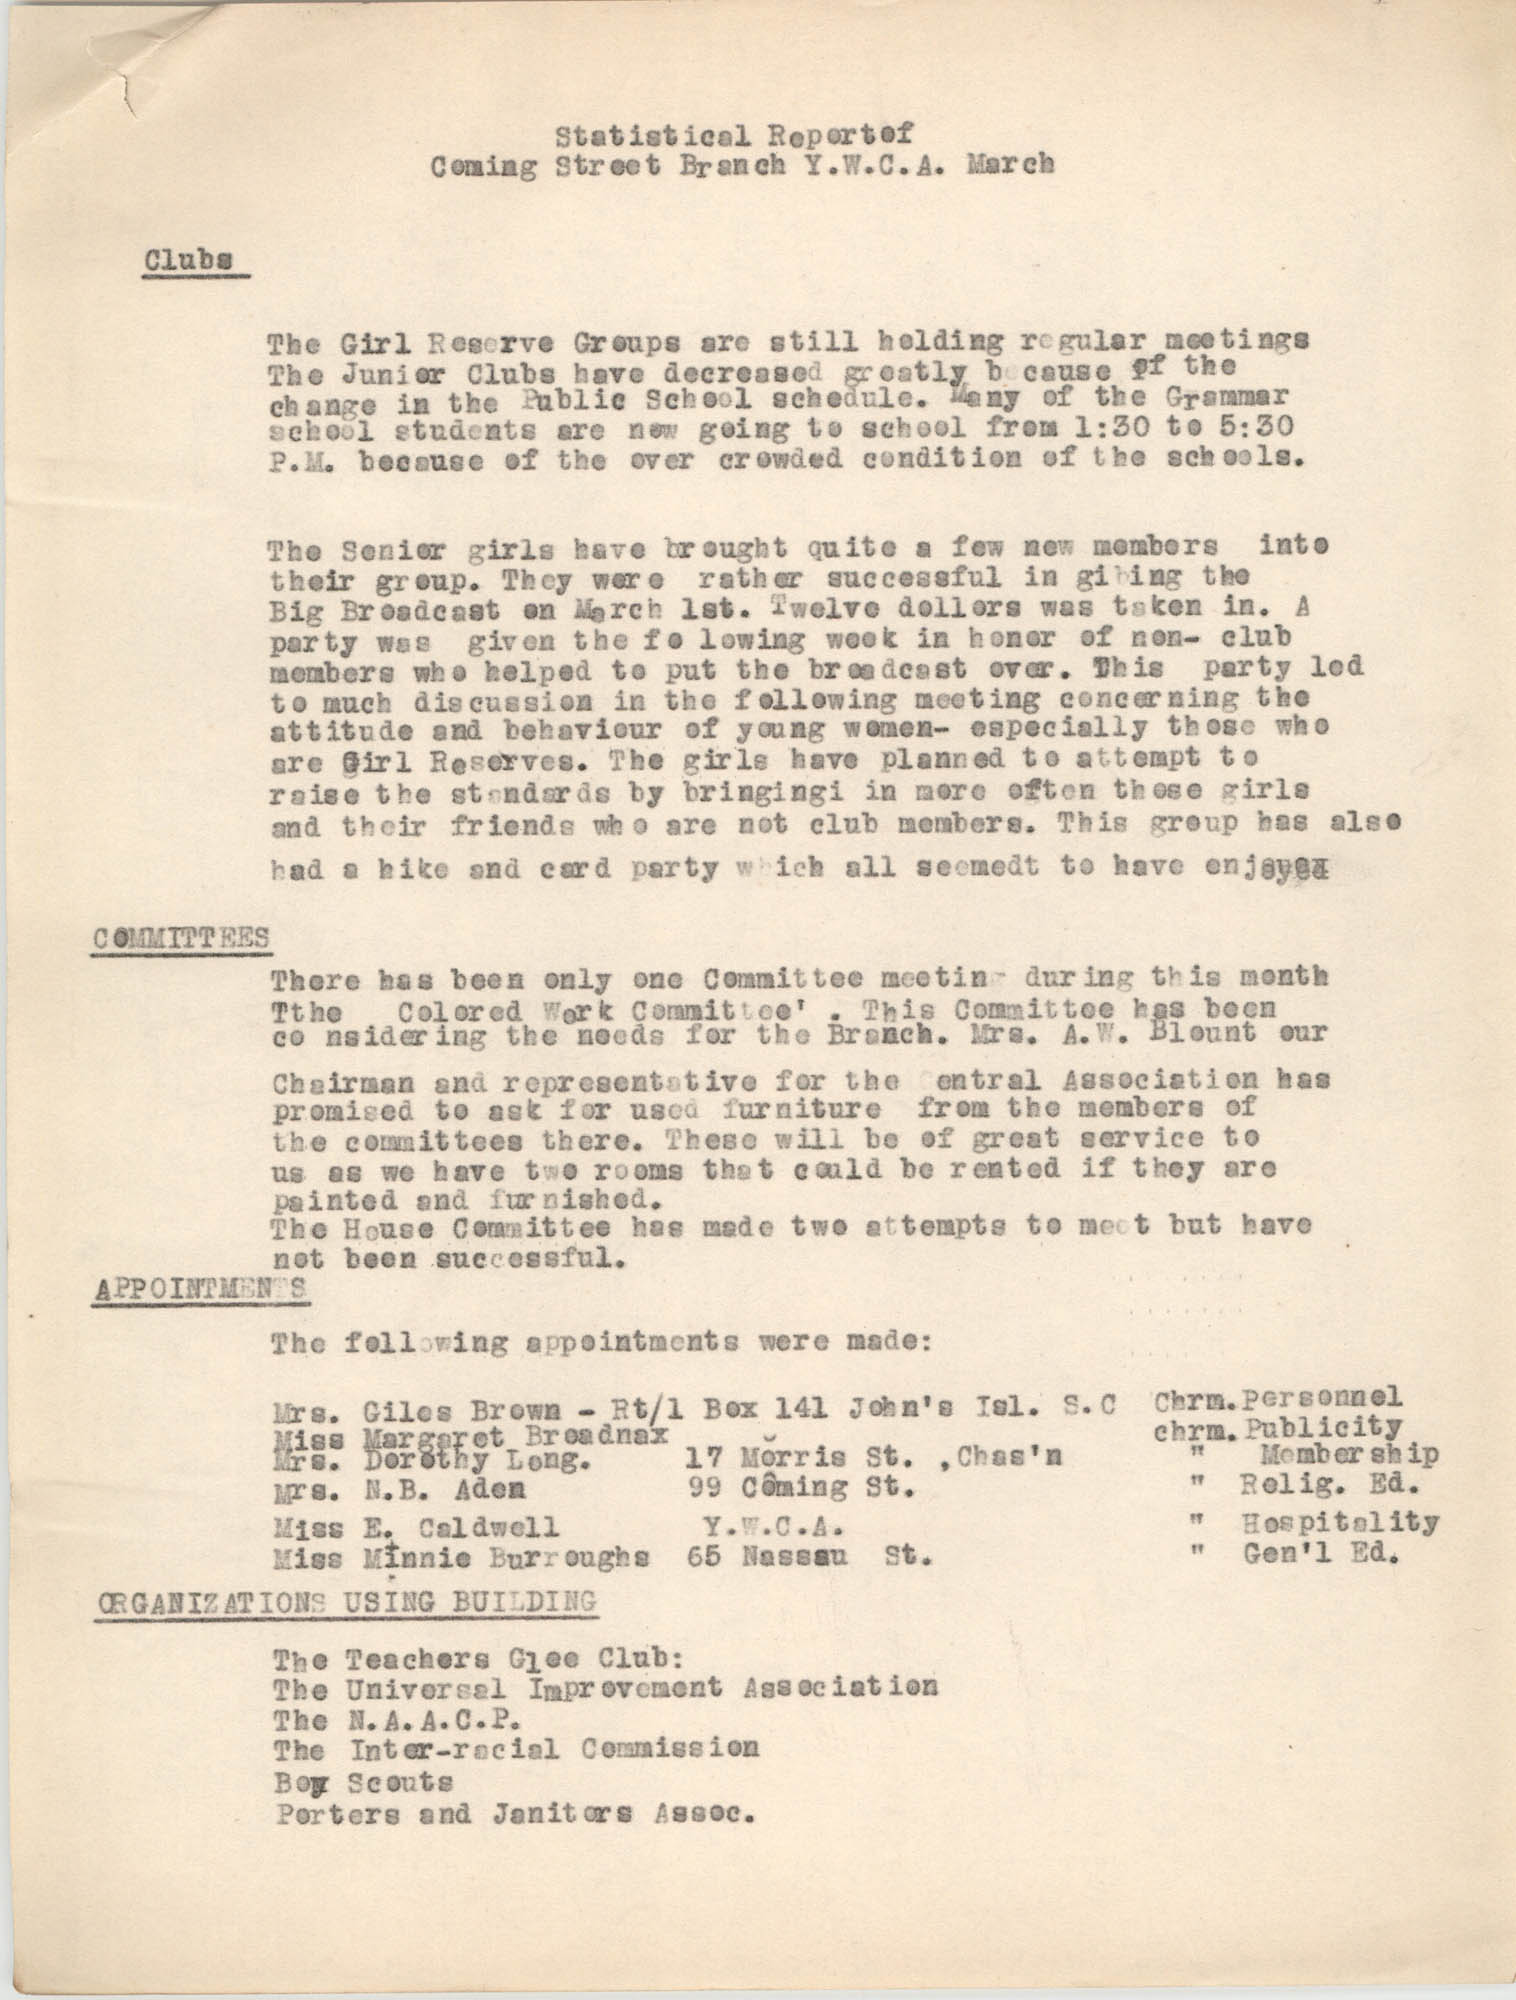 Statistical Report of the Coming Street Y.W.C.A., March 1937